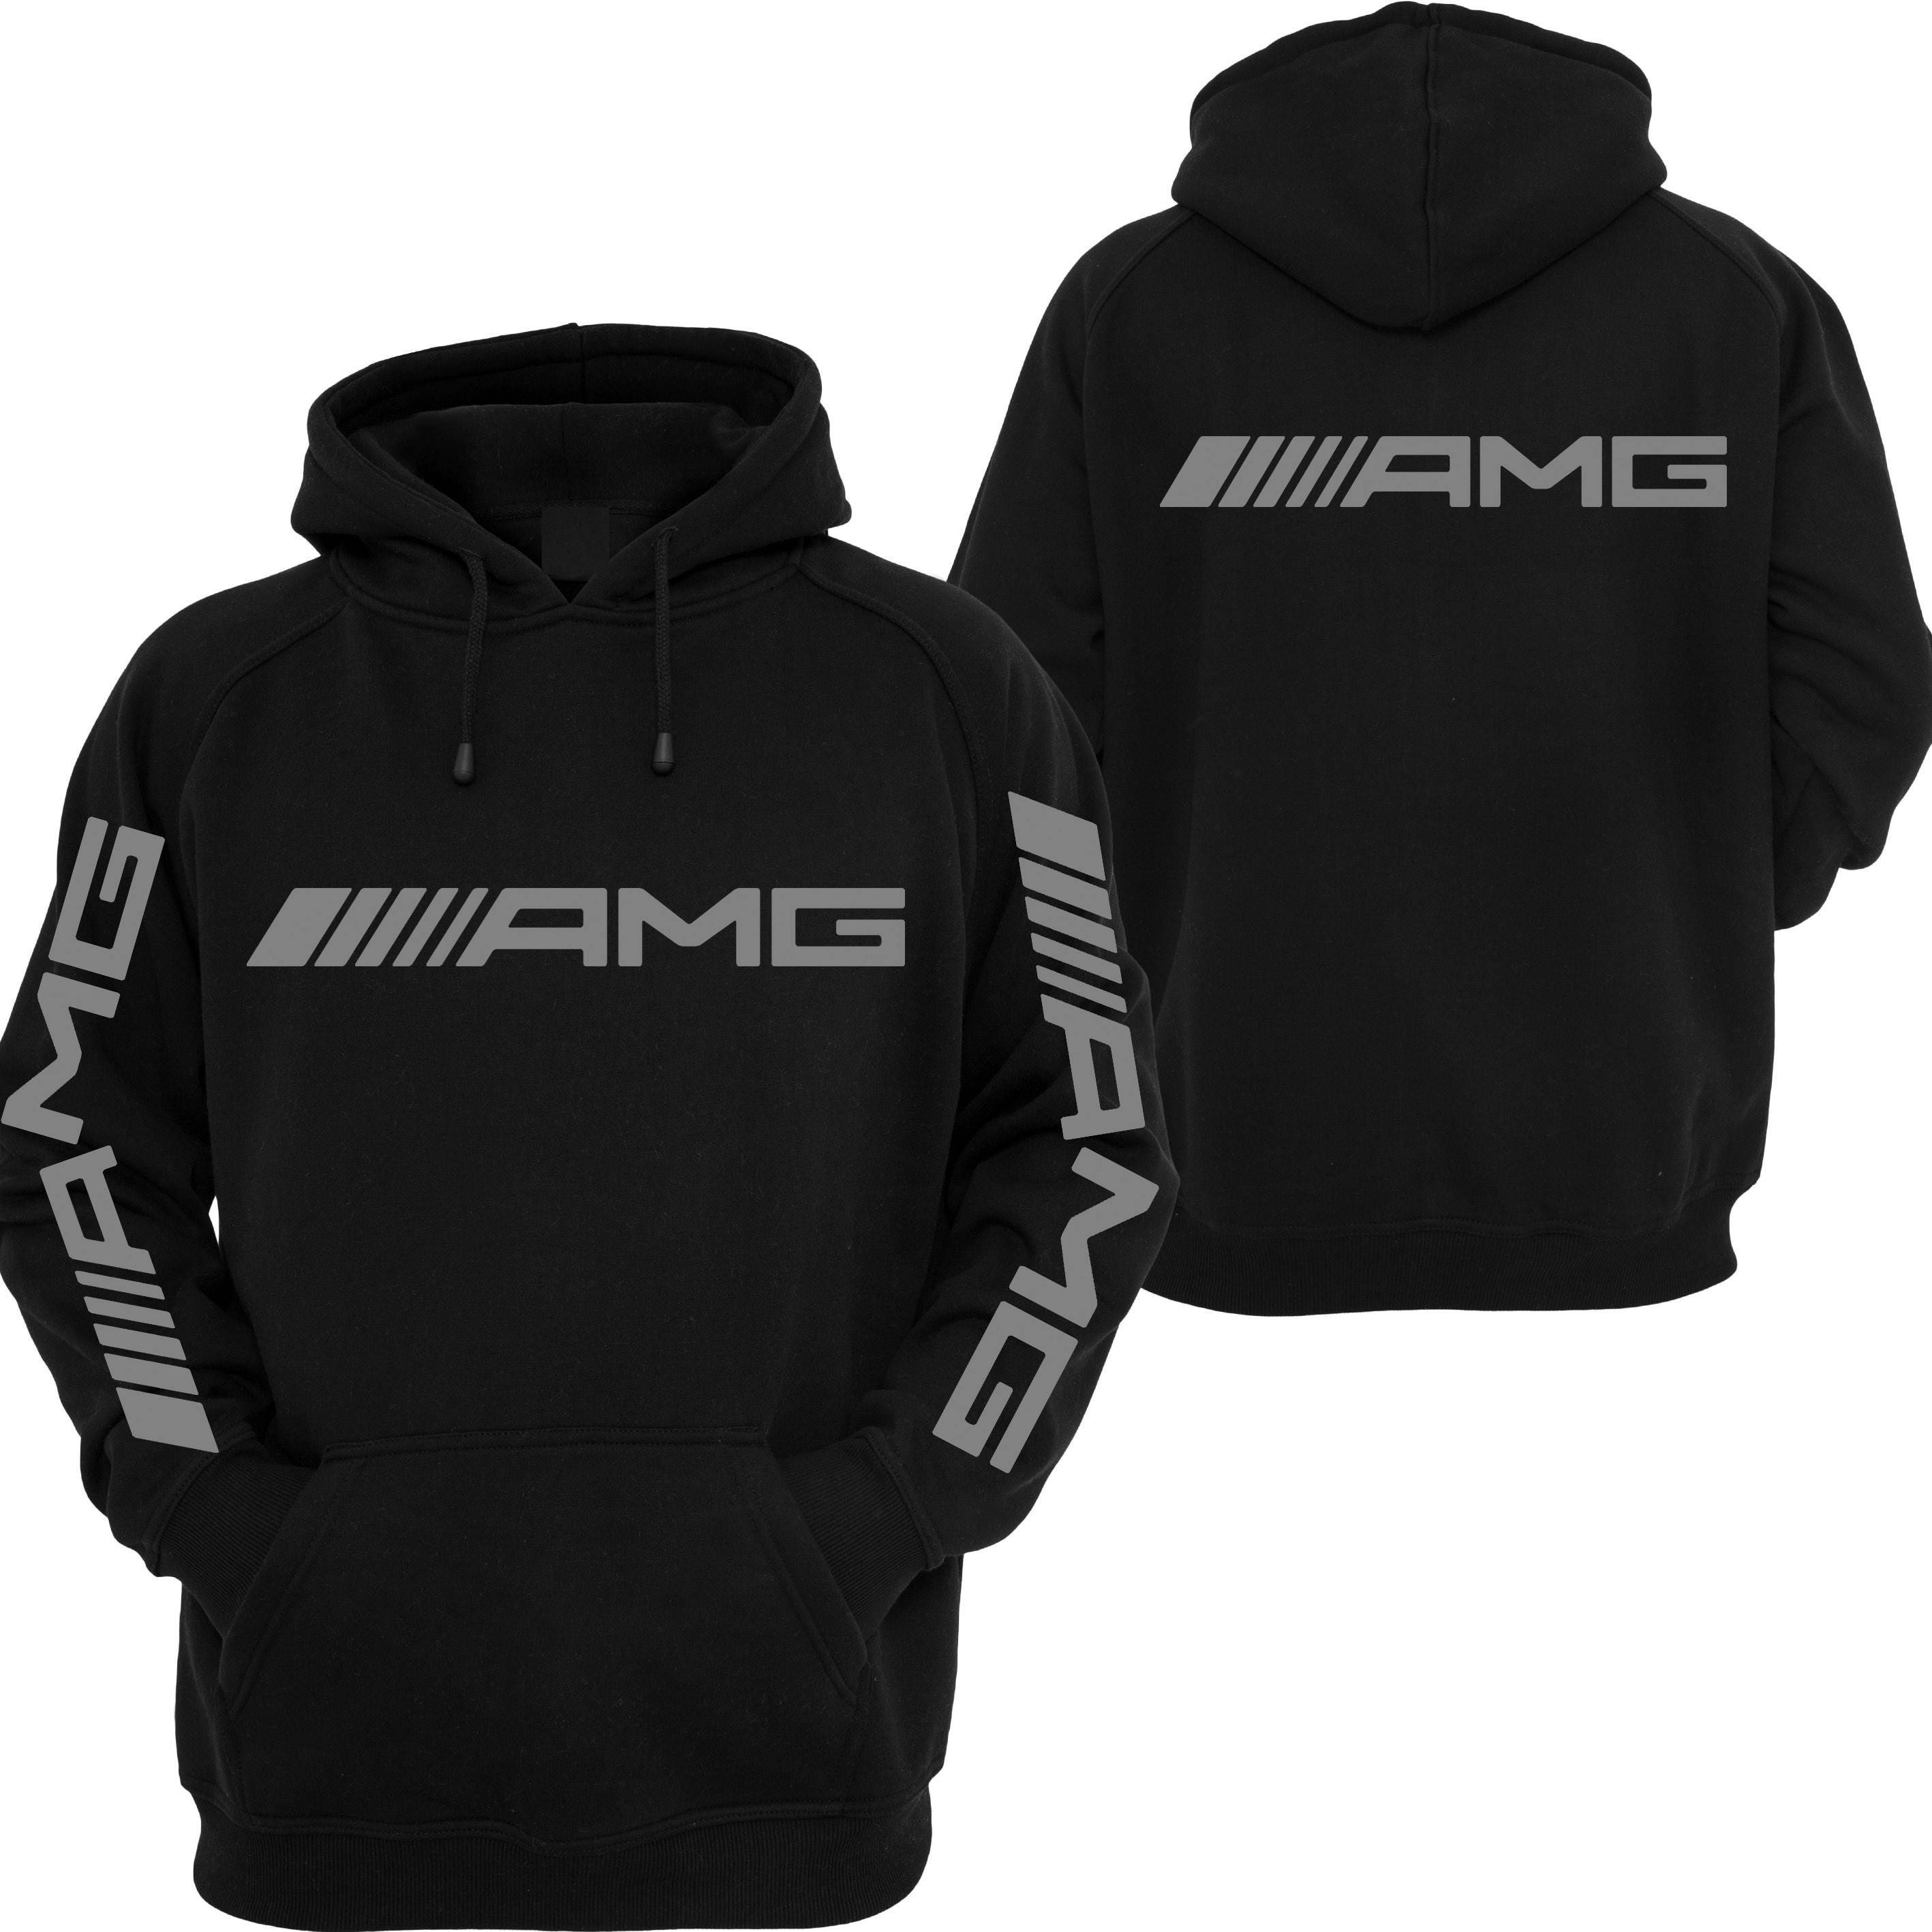 herren amg mercedes hoodie sweatshirt d nne sport jacke etsy. Black Bedroom Furniture Sets. Home Design Ideas